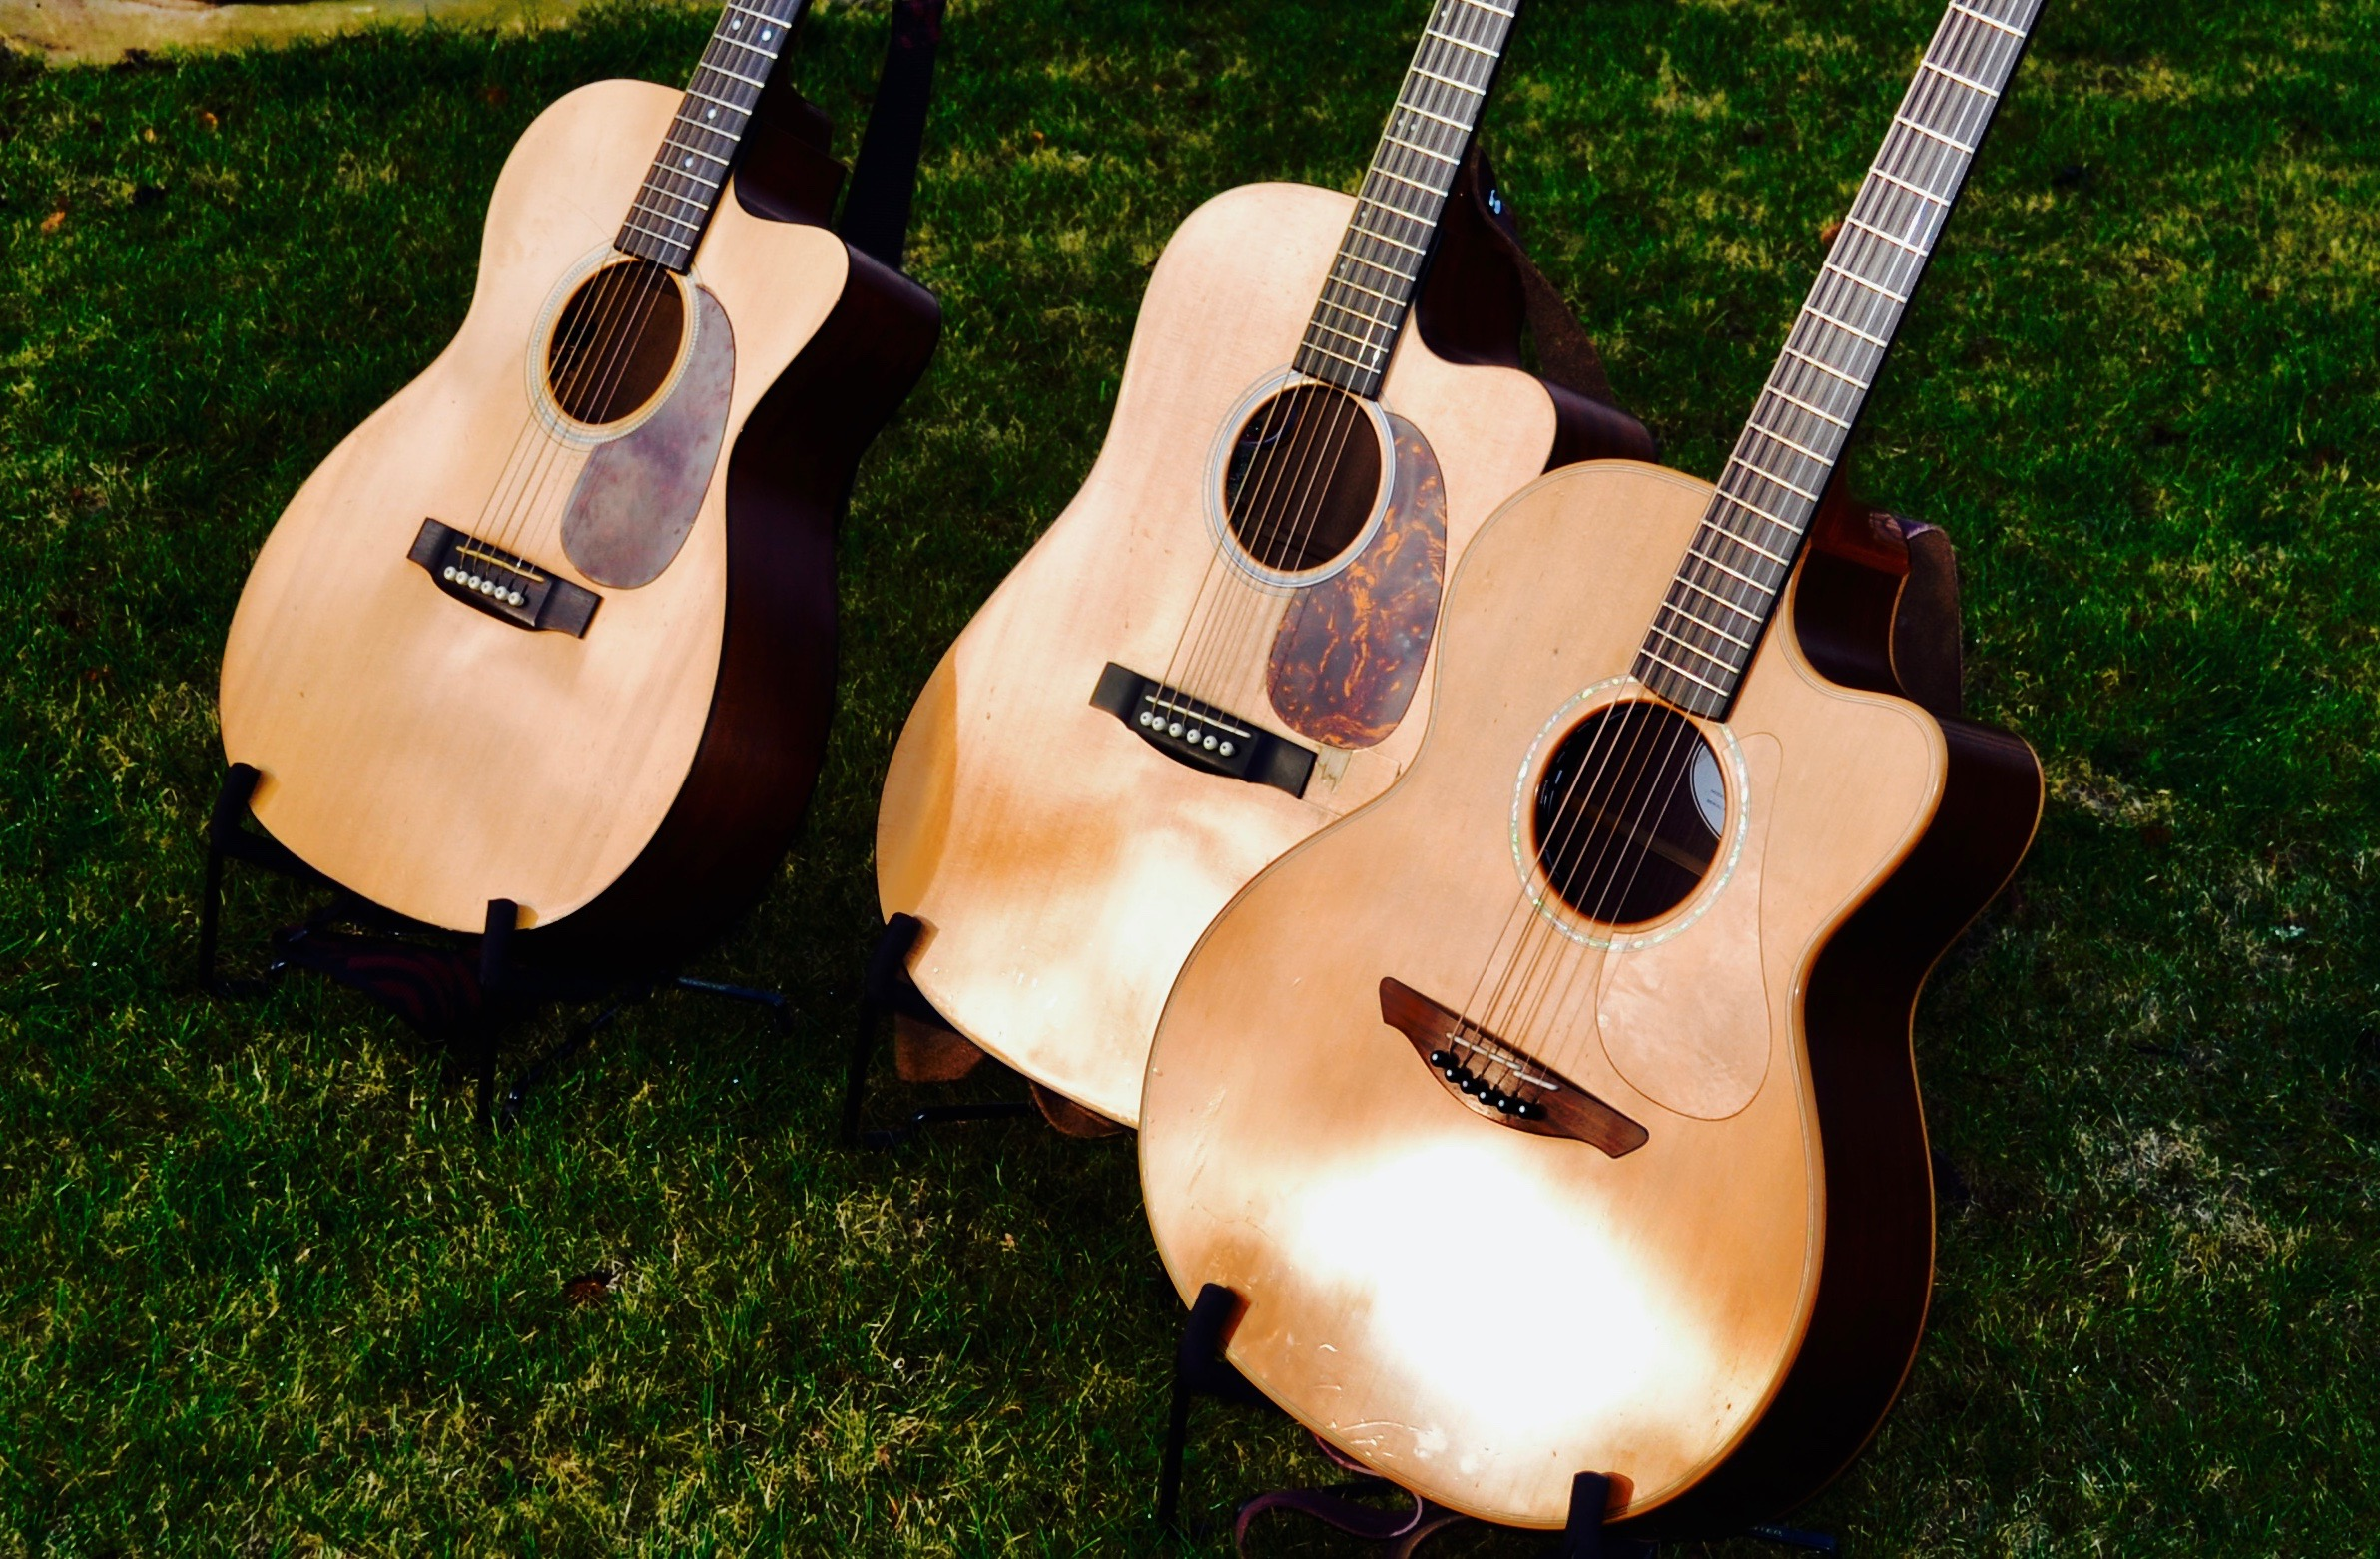 Guitar Lessons, Songwriting, Pro Tools etc with The Acoustic Yard